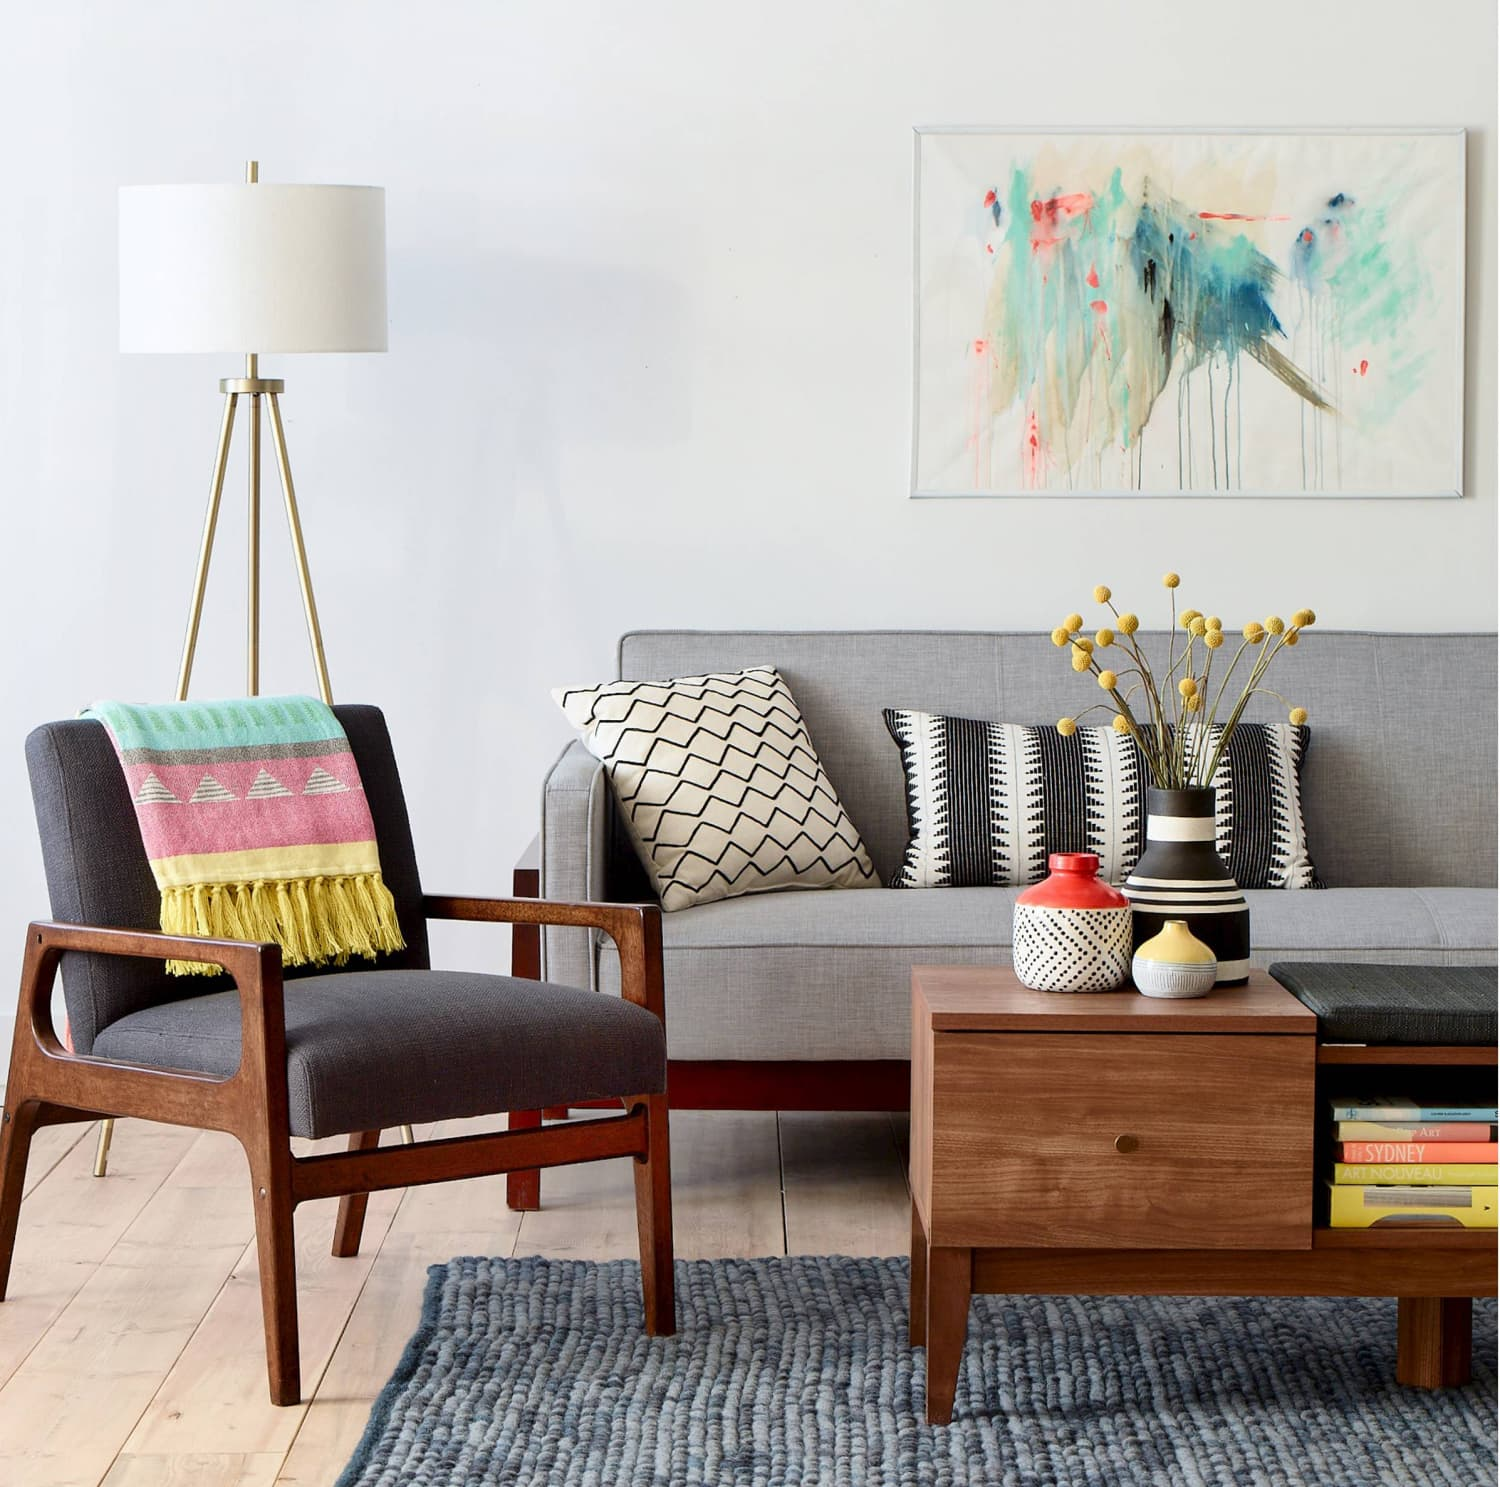 Huge Furniture Sale: Ends Today! What To Snag At Target's Huge Furniture Sale